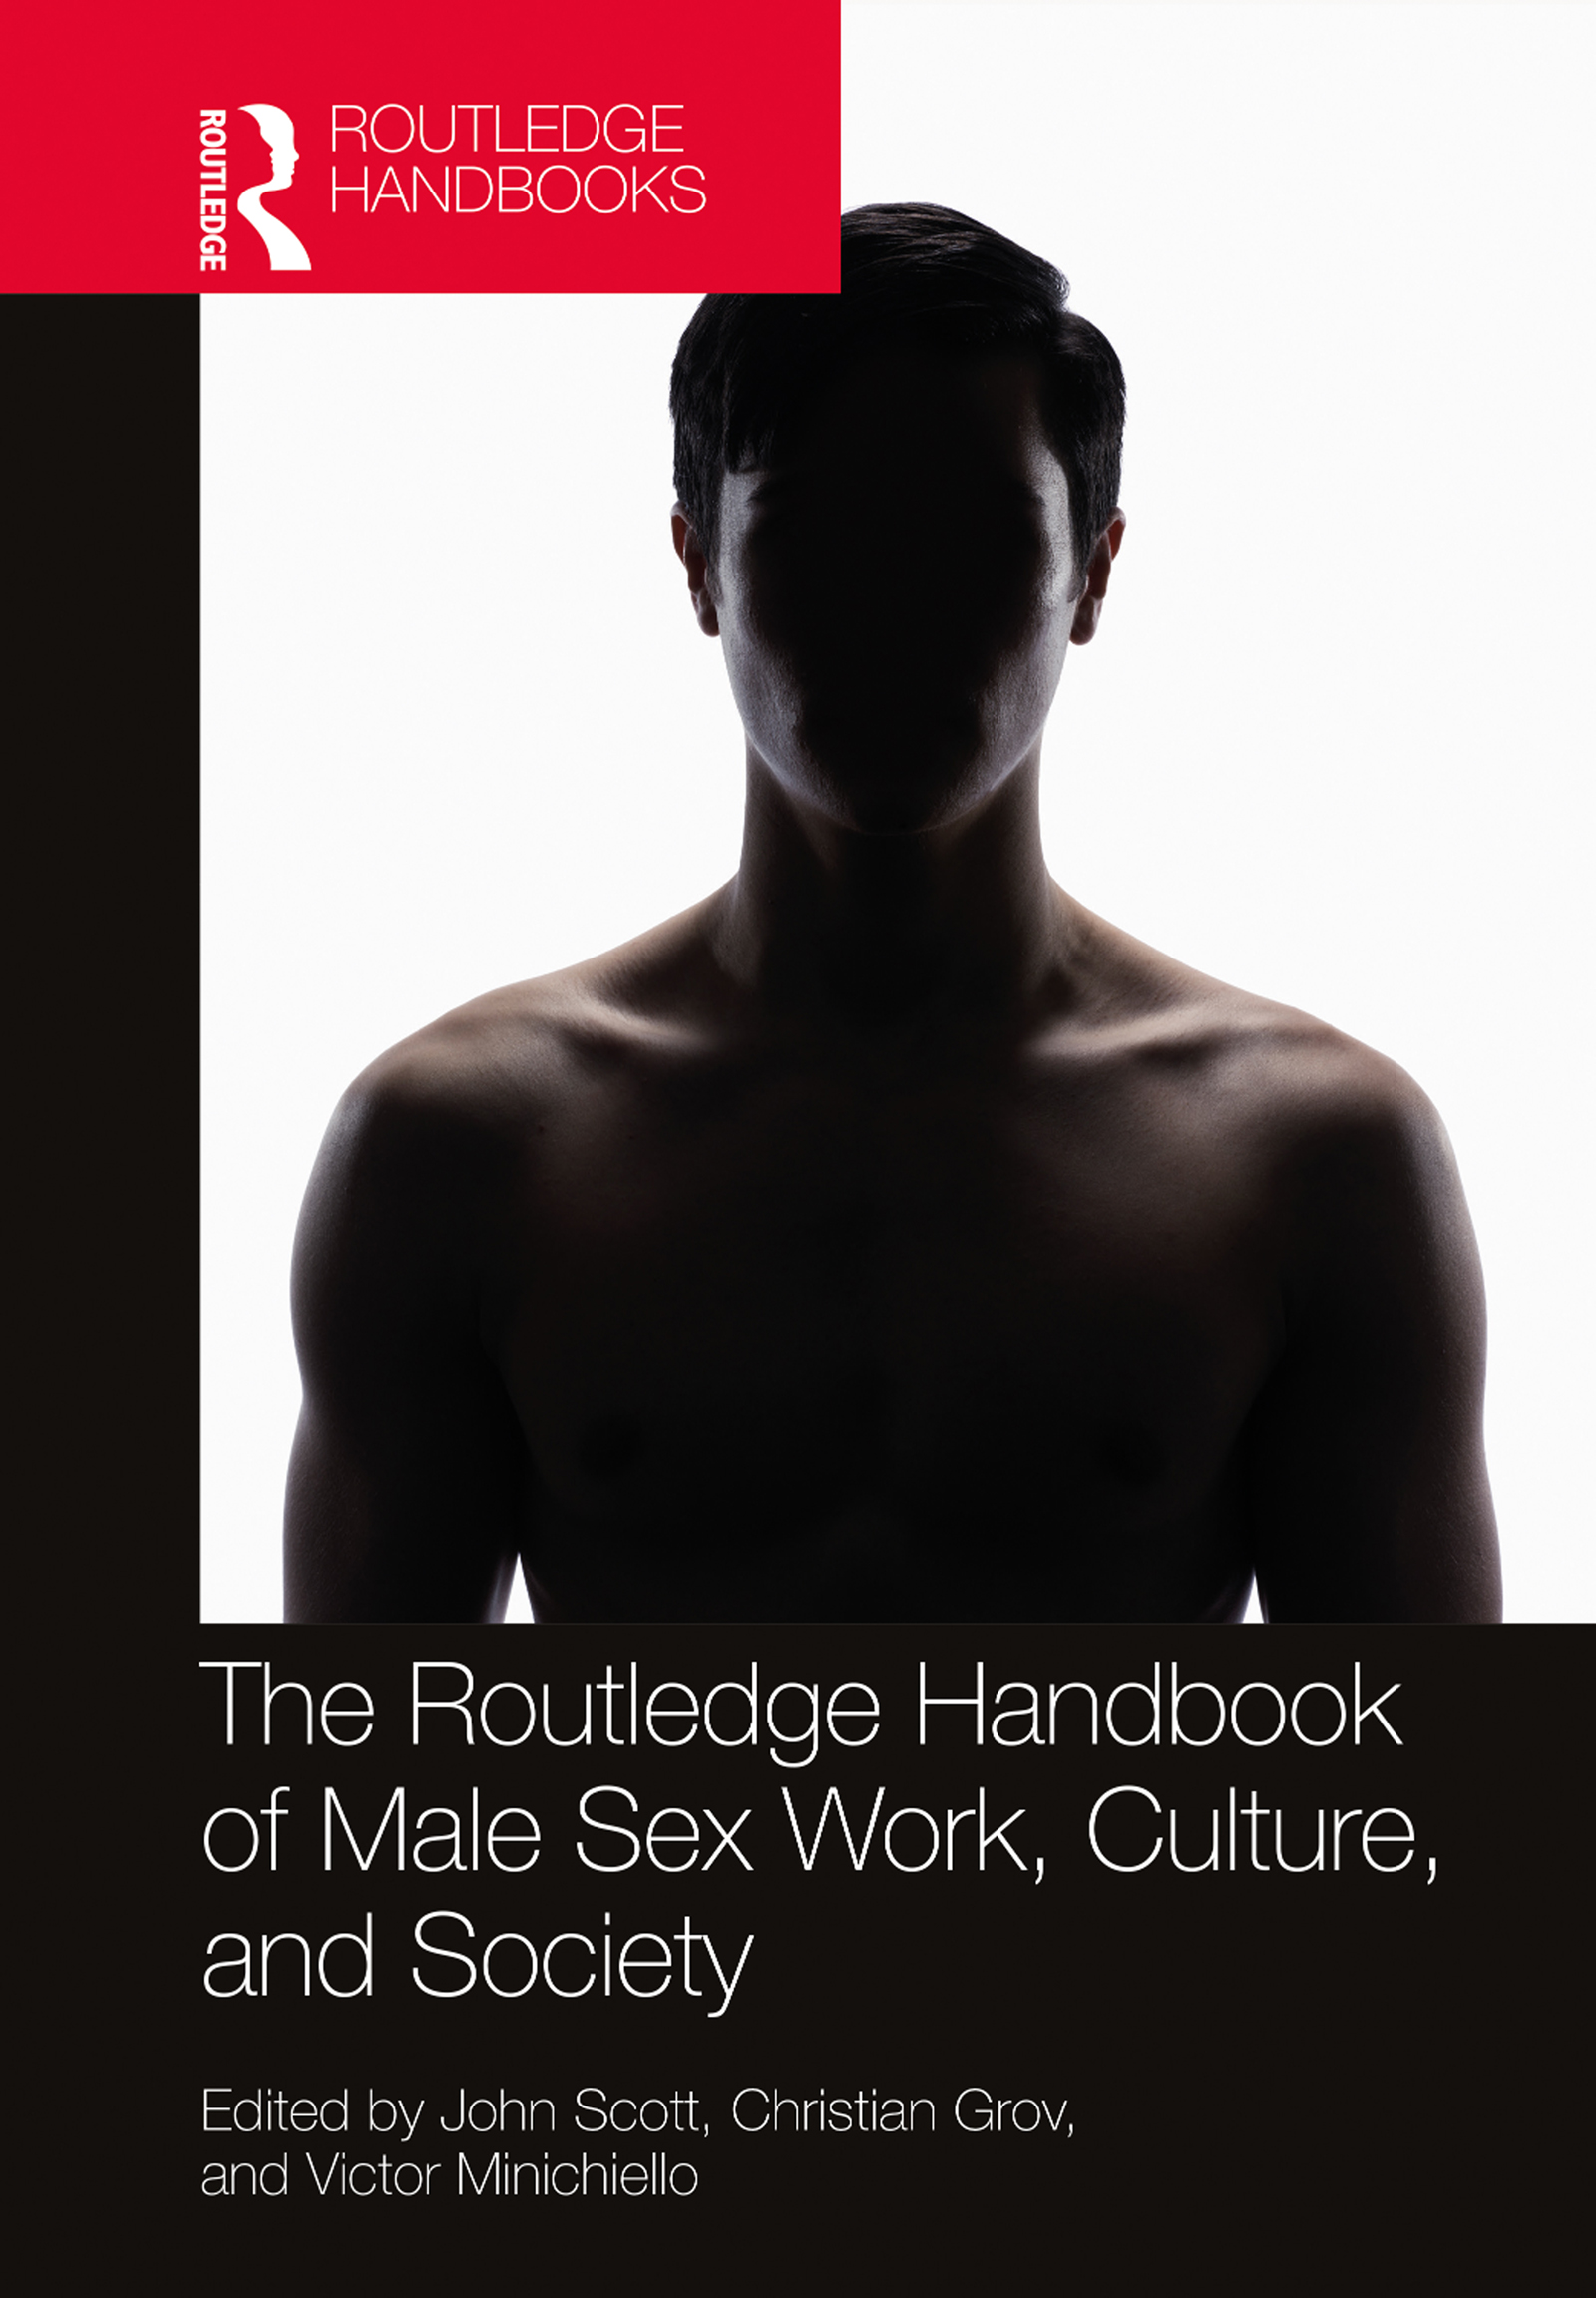 Global epidemiology of HIV and other sexually transmitted infections among male sex workers